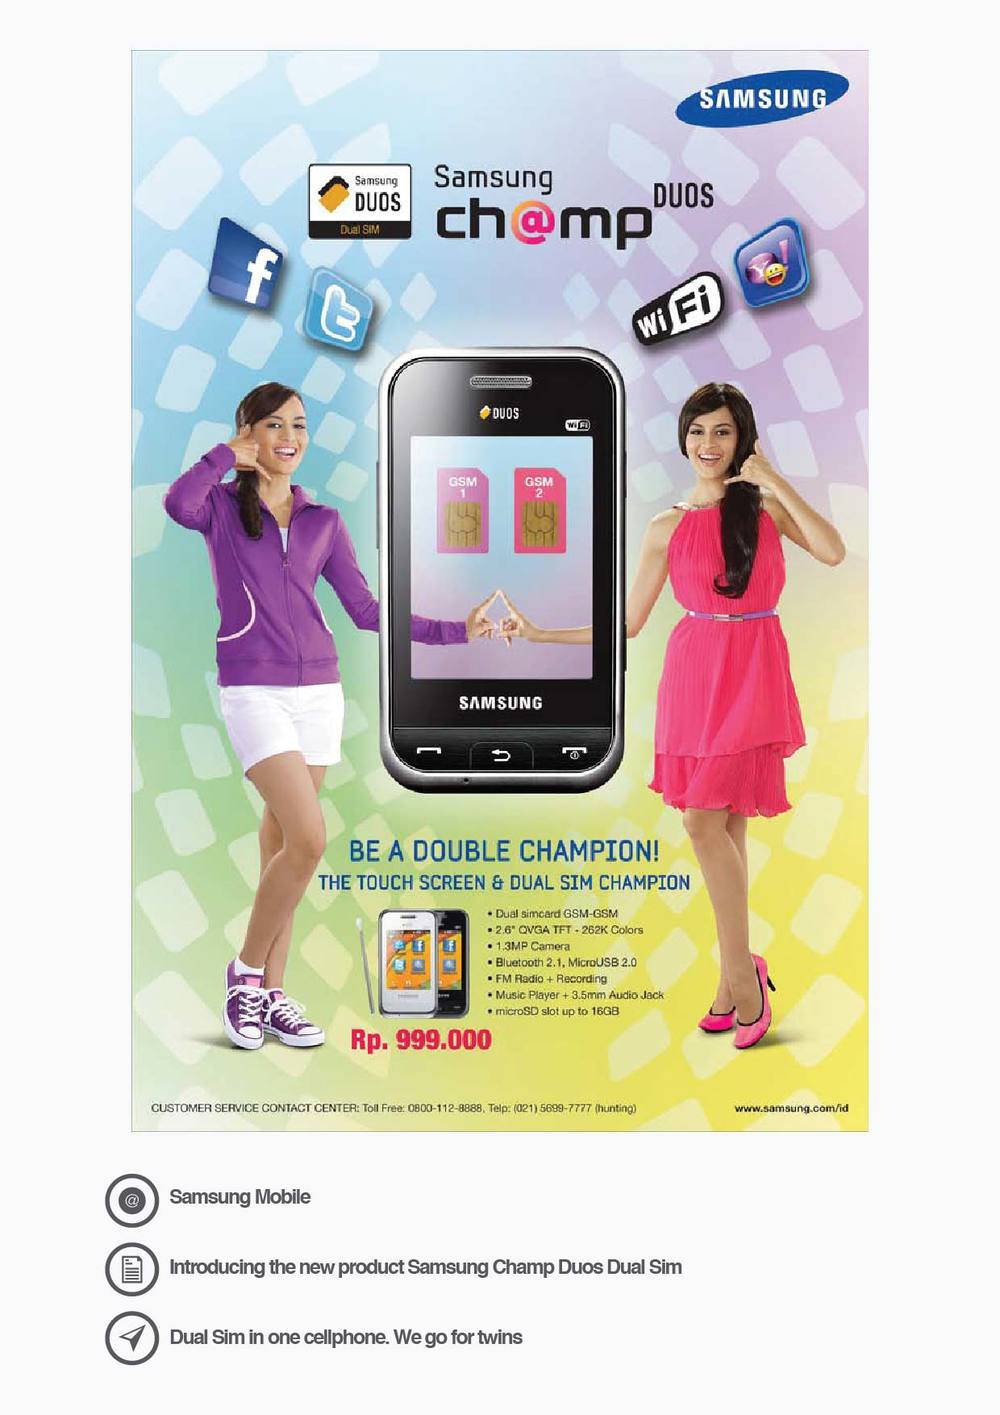 Samsung Mobile Introducing the new product Samsung Champ Duos Dual Sim